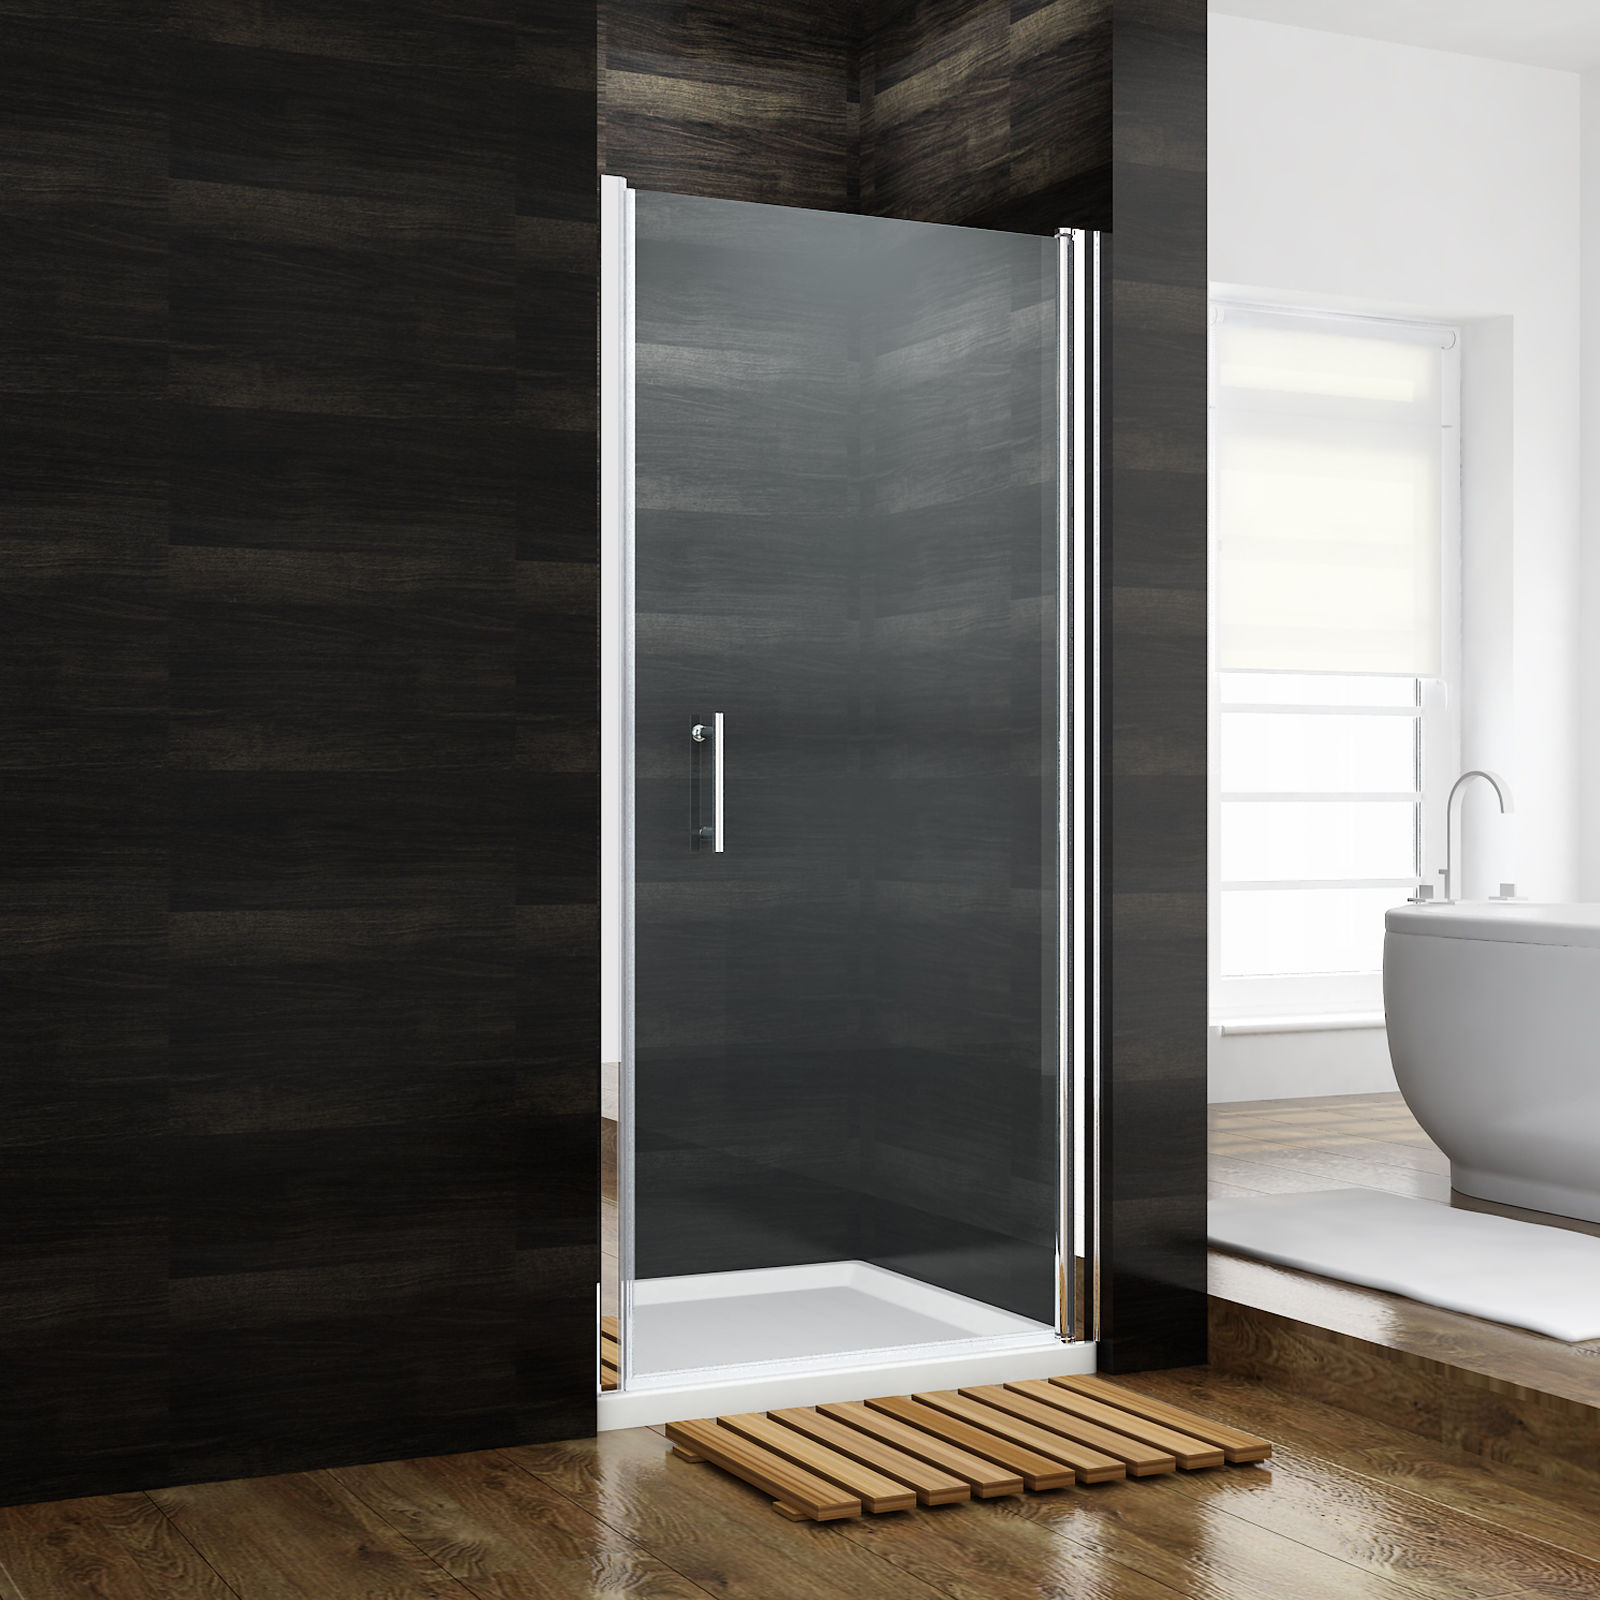 Details About Sunny Shower Semi Frameless Glass Pivot Door 35 1 4 Alcove Shower Chrome Finish